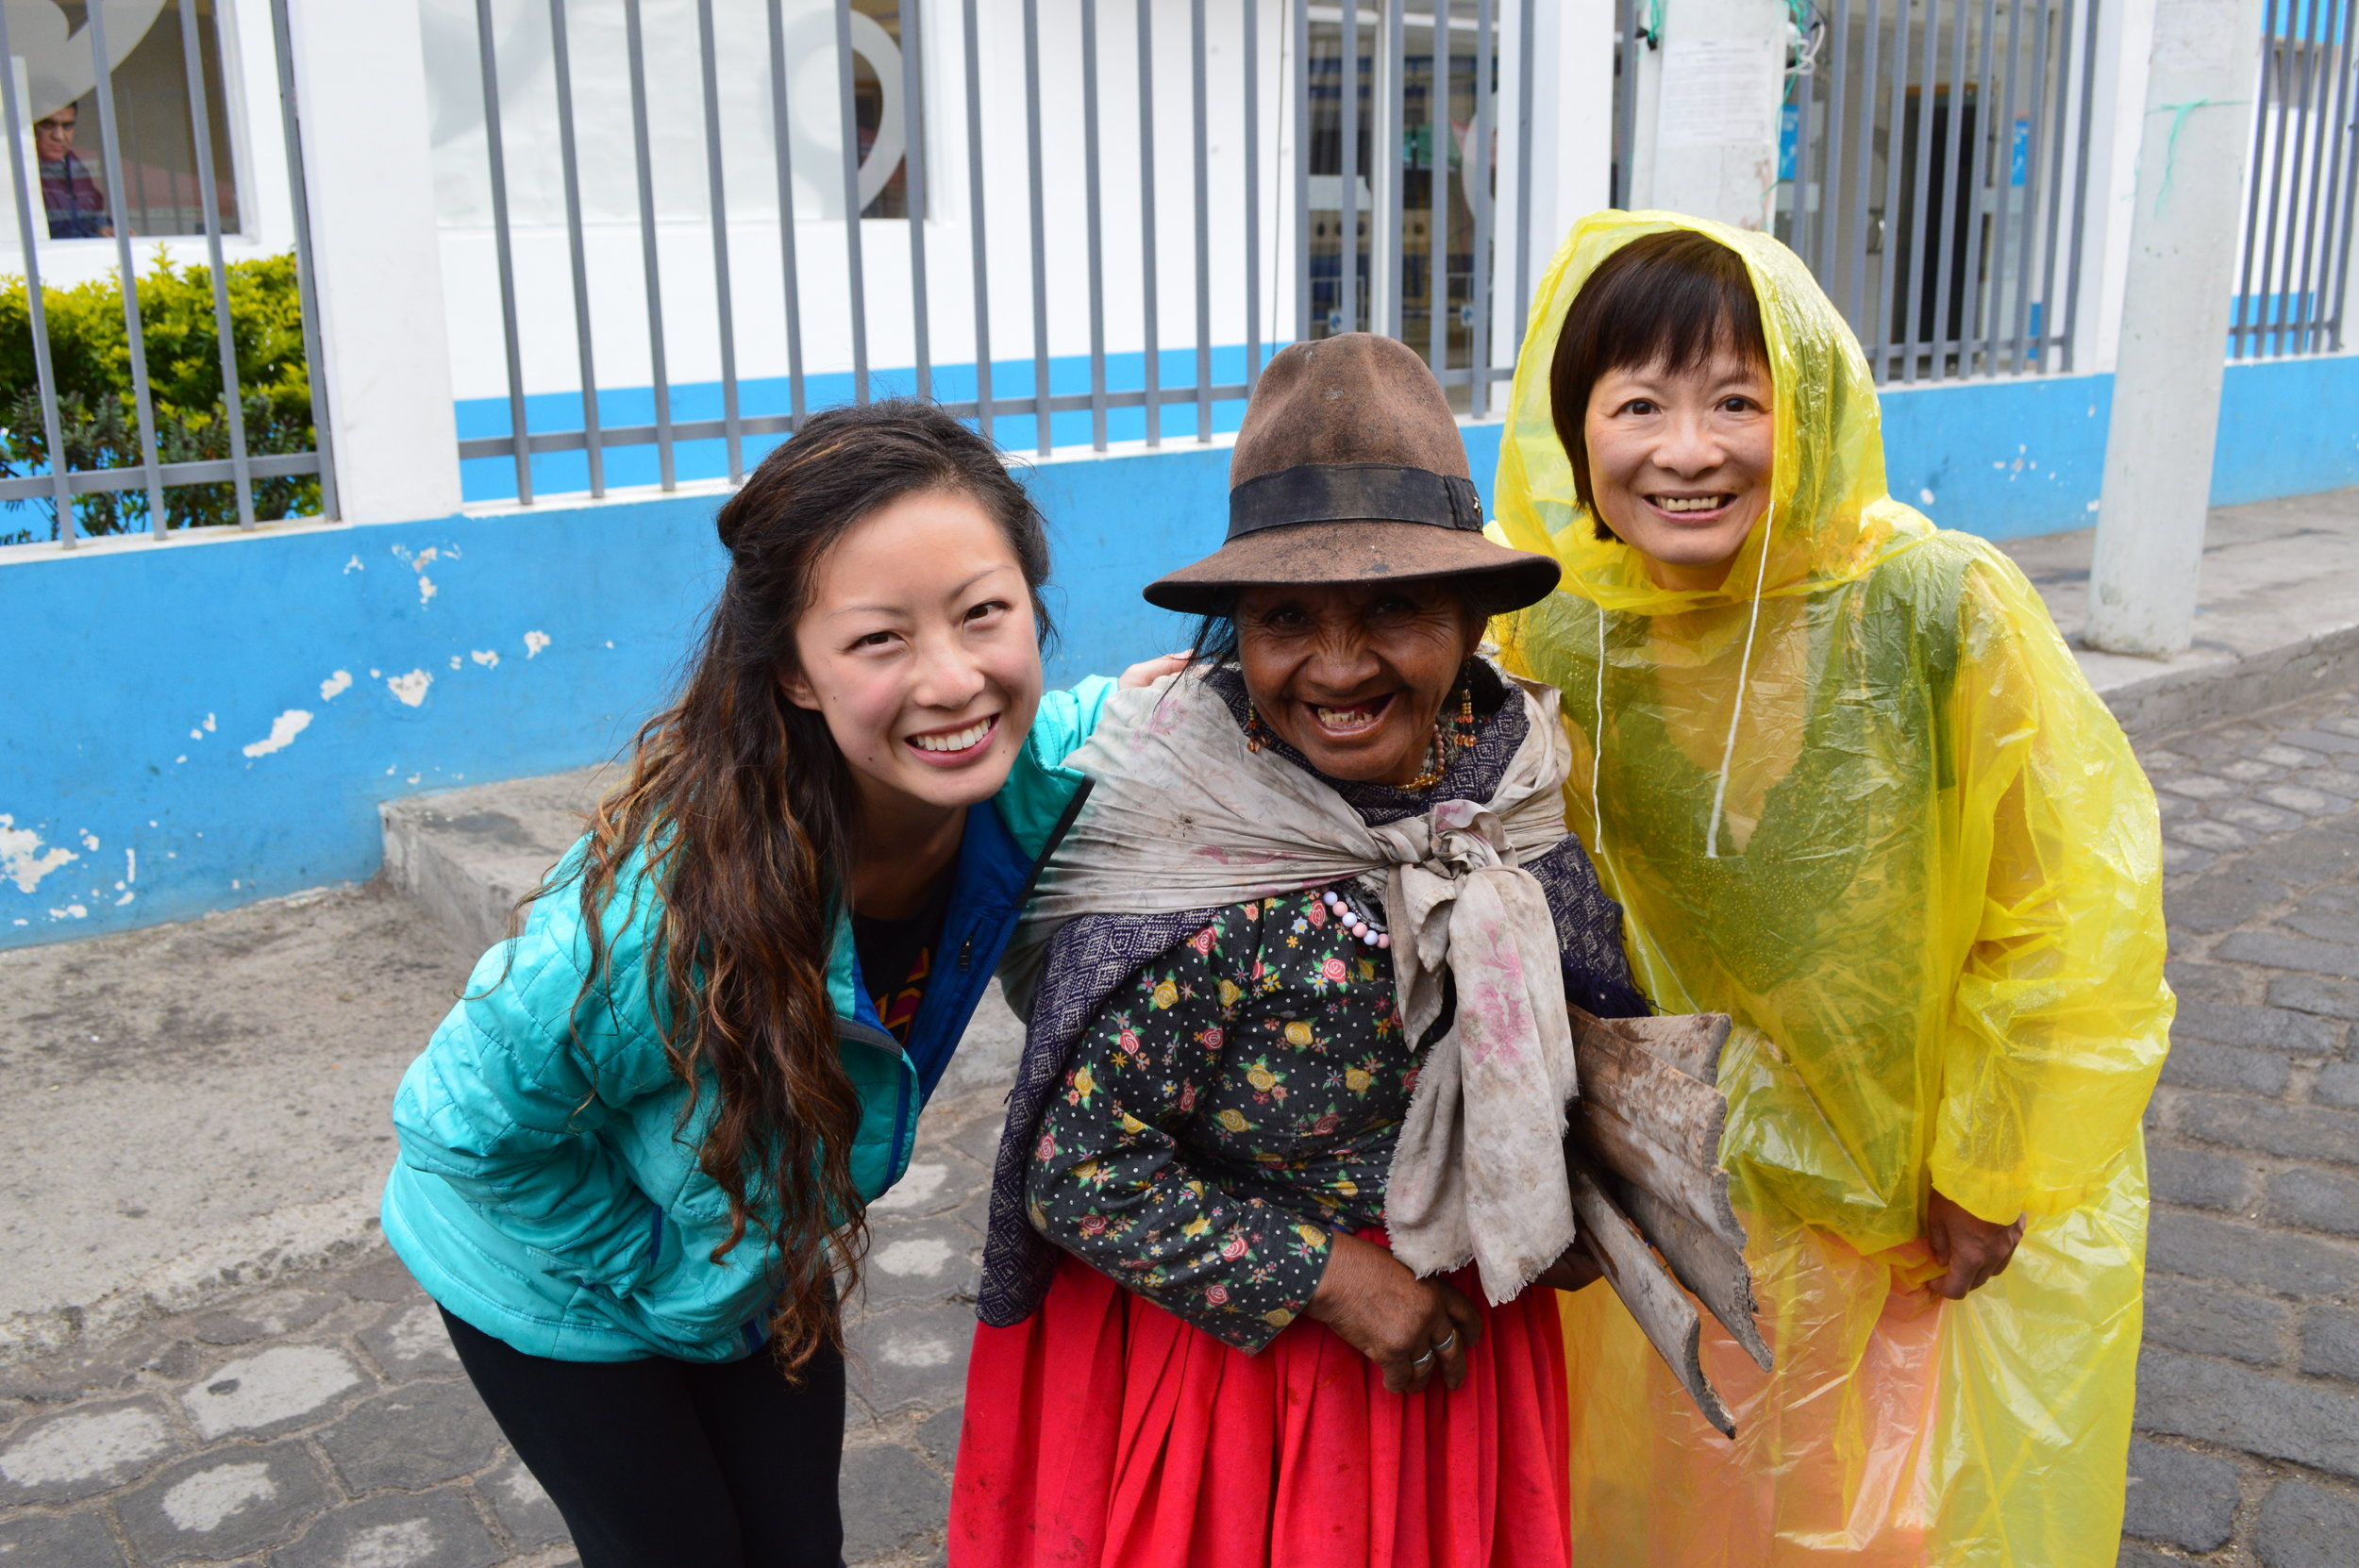 It began drizzling and my mom threw on her bright yellow poncho which quickly became a laughing matter for everyone we walked by. This lady was so amused that she wanted a picture with us...how sweet!